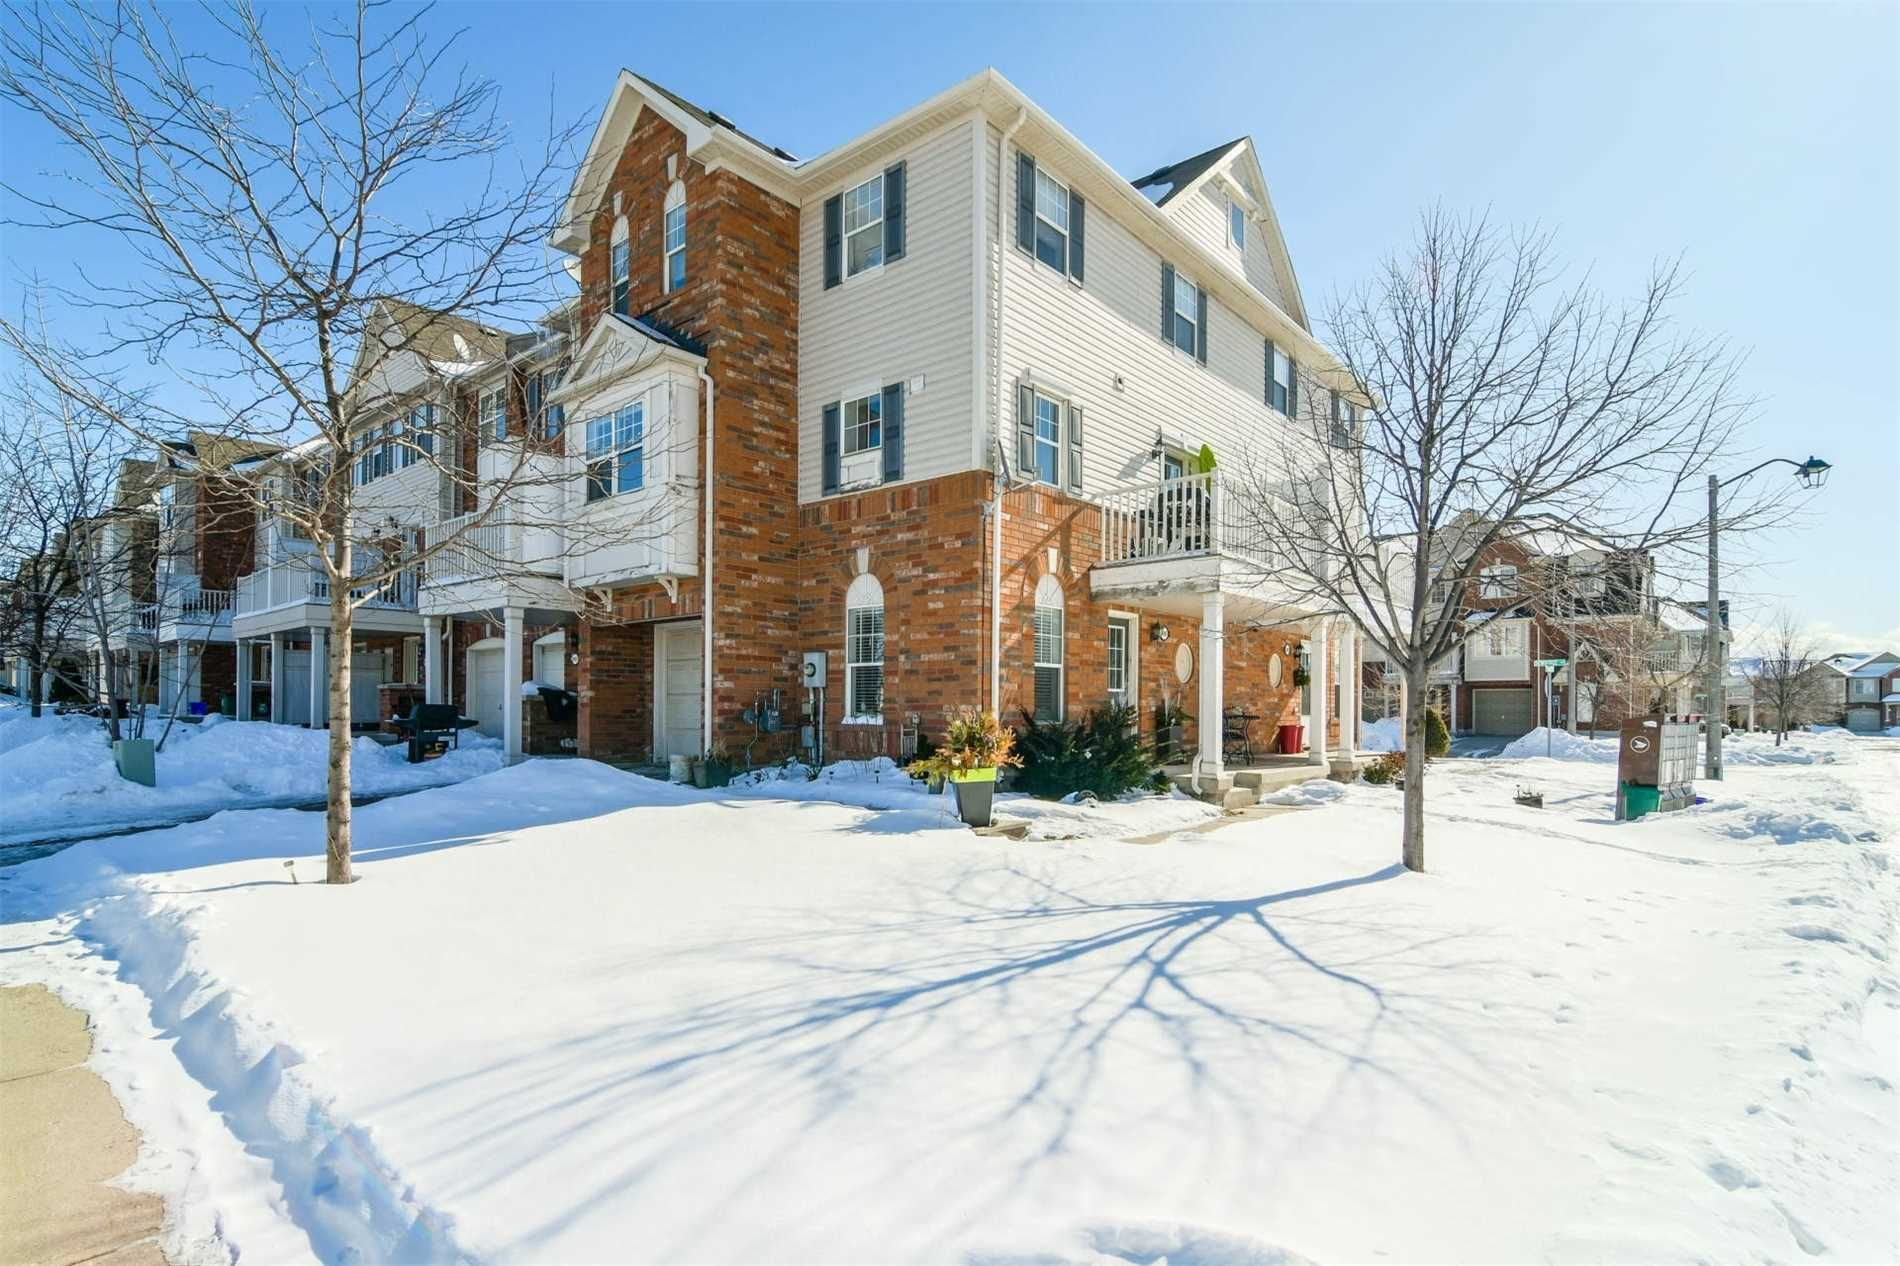 3095 Stornoway Circle for sale